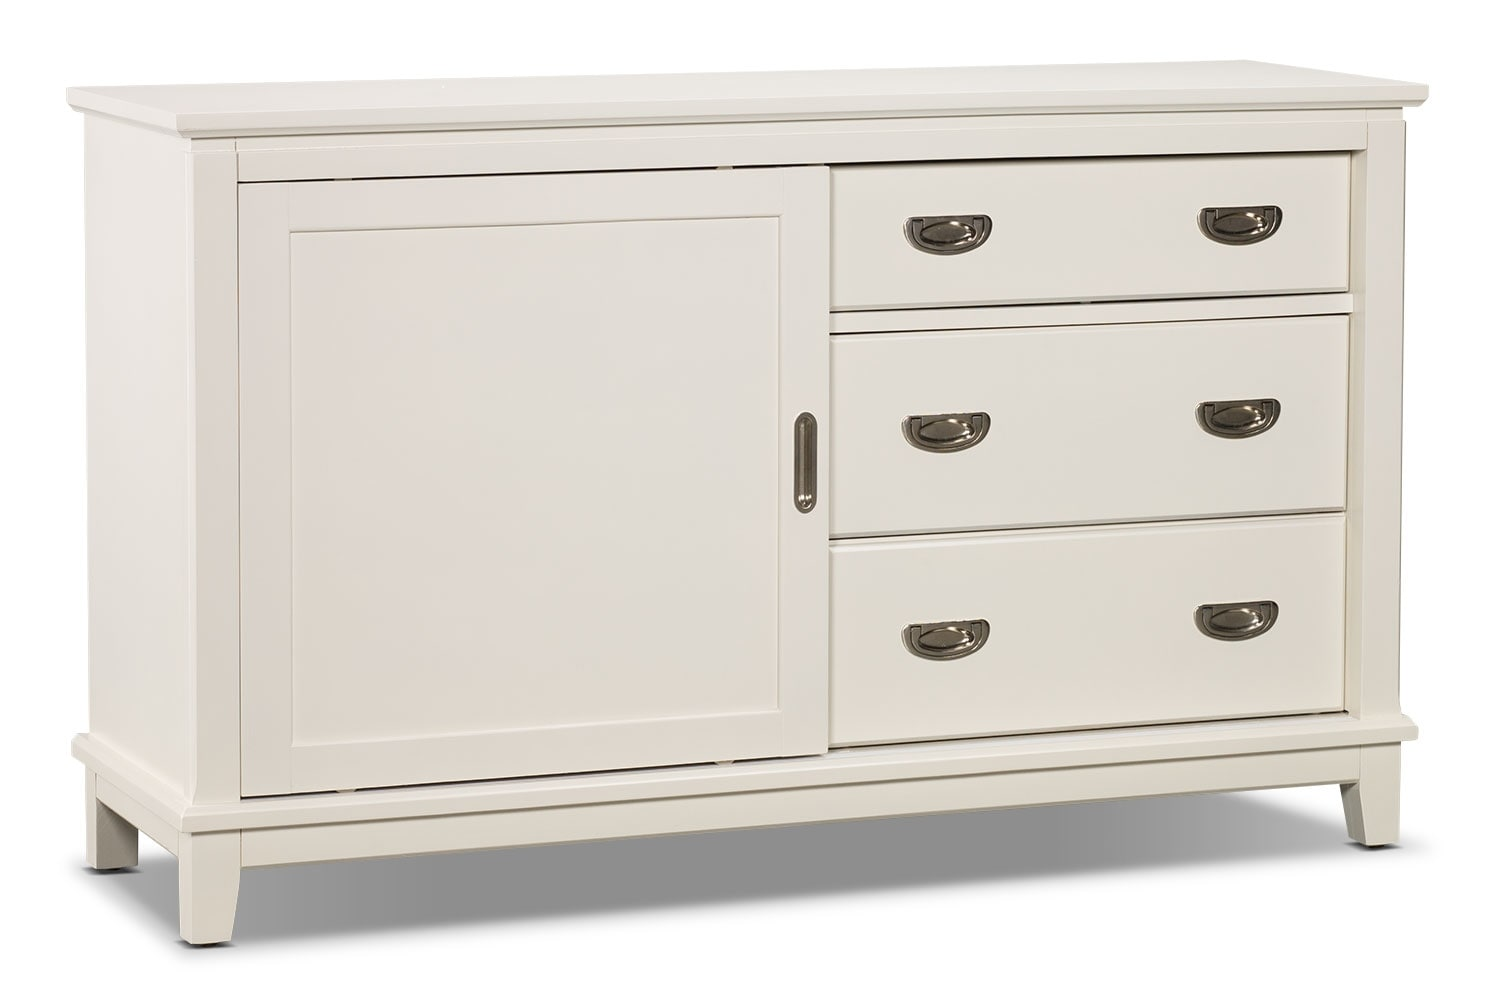 Kids Furniture - Chadwick Dresser - White